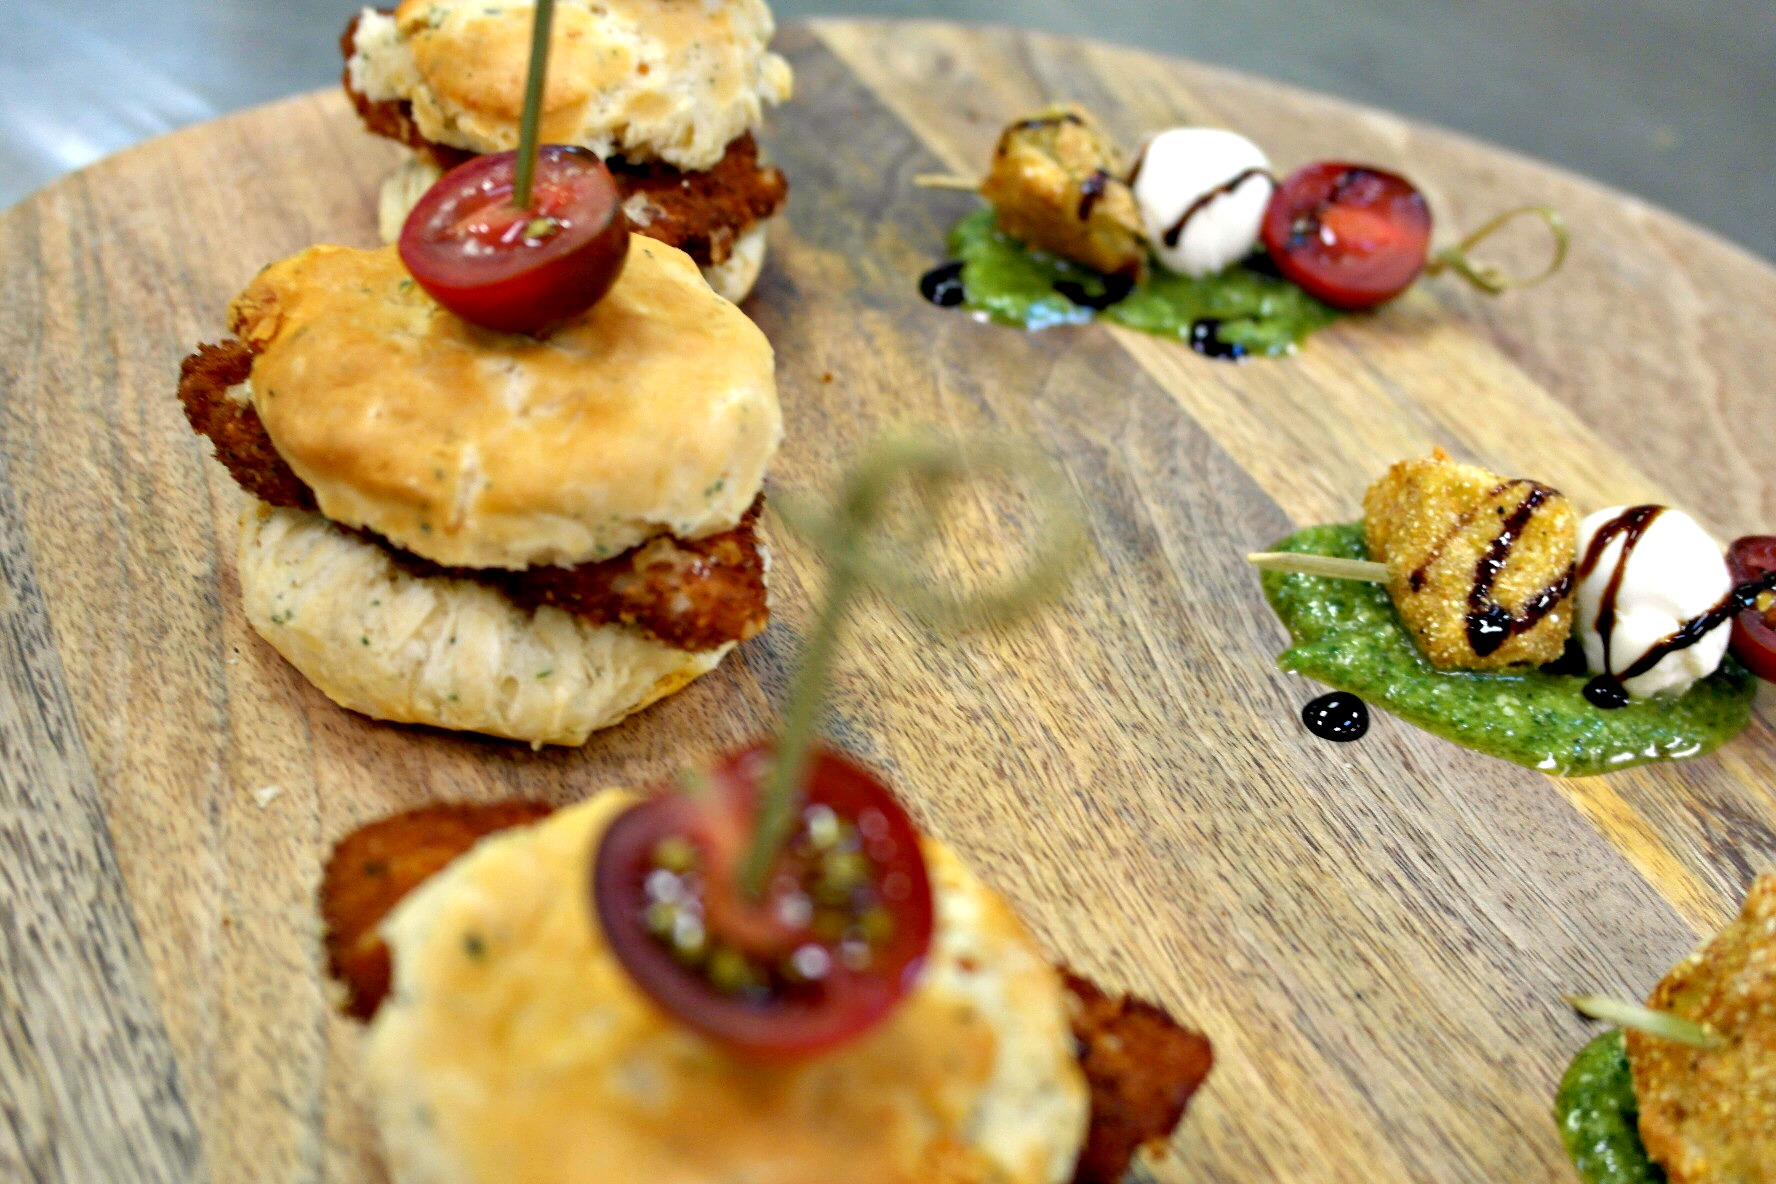 Italian Chicken & Biscuit with Tomato Jam